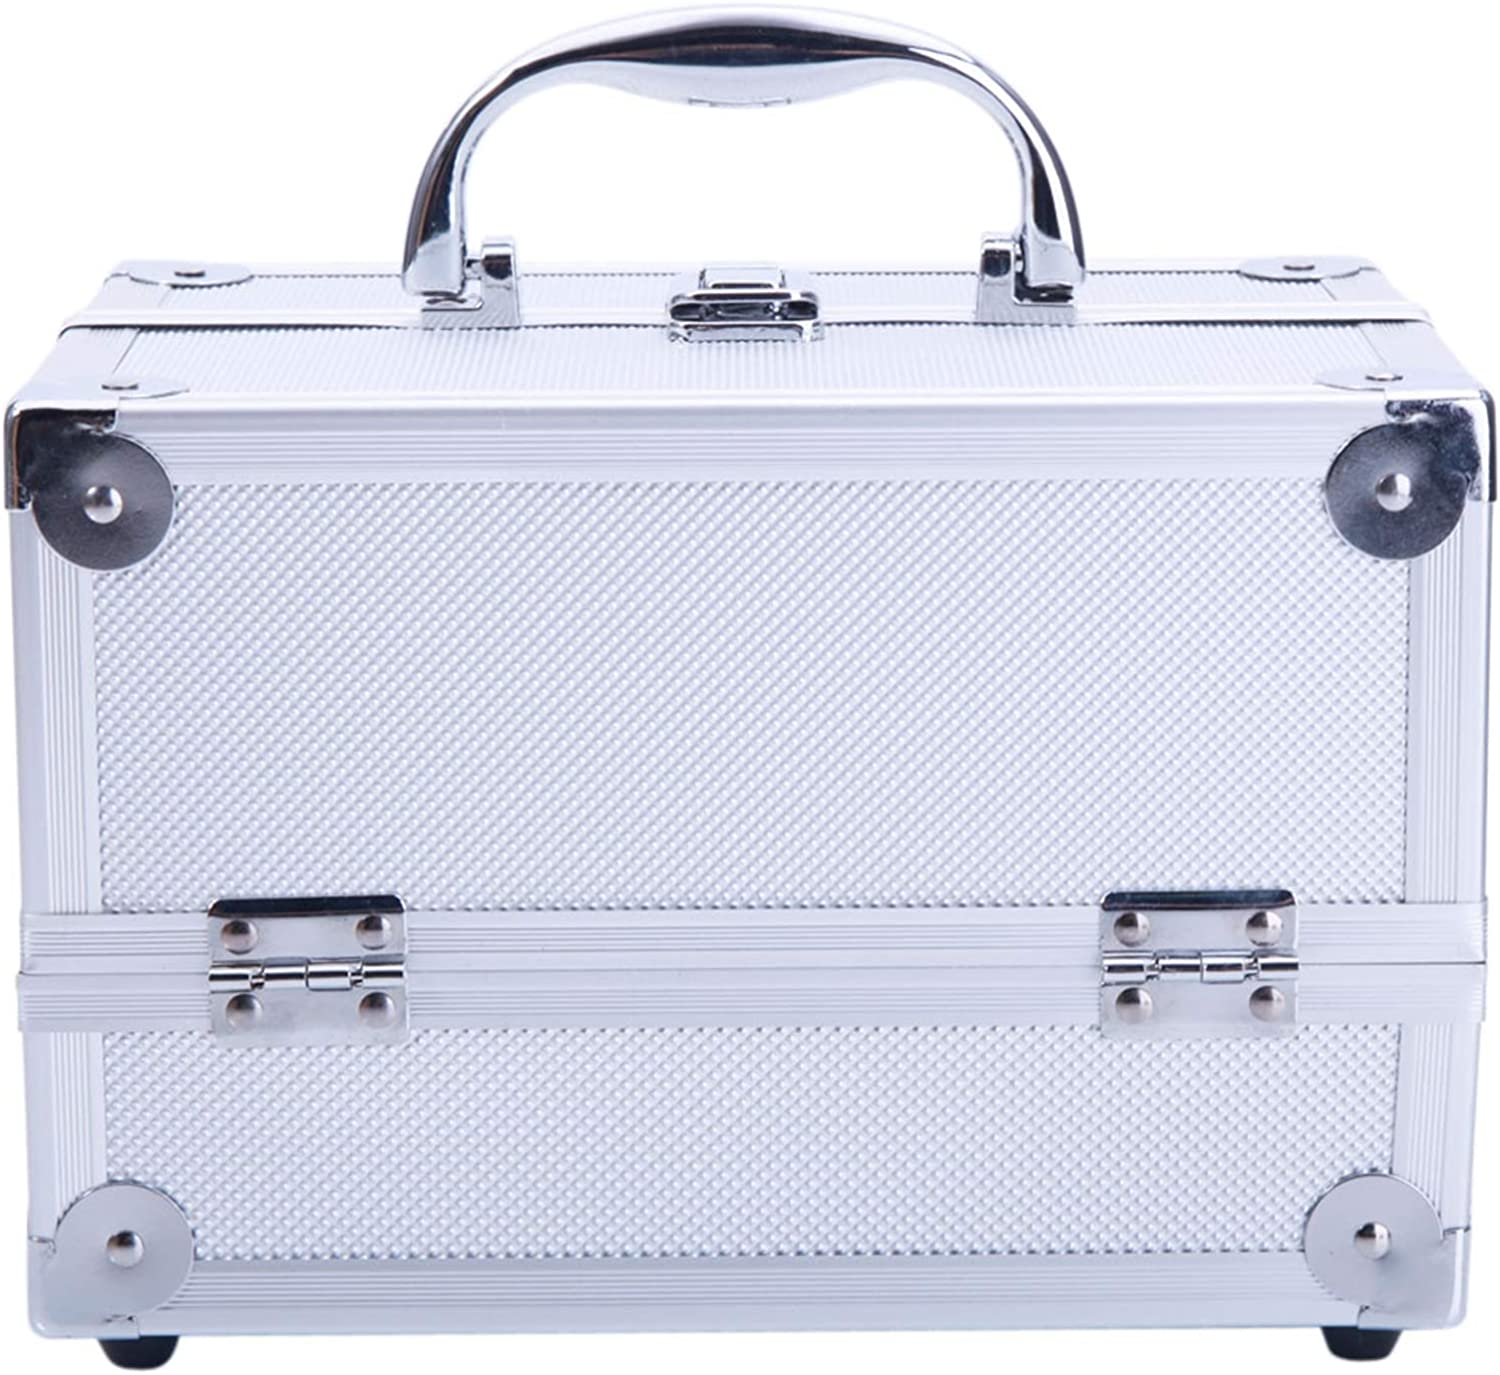 Trlec gt4-ly Aluminum Makeup Some Opening large release sale reservation Train Org Box Cosmetic Case Jewelry